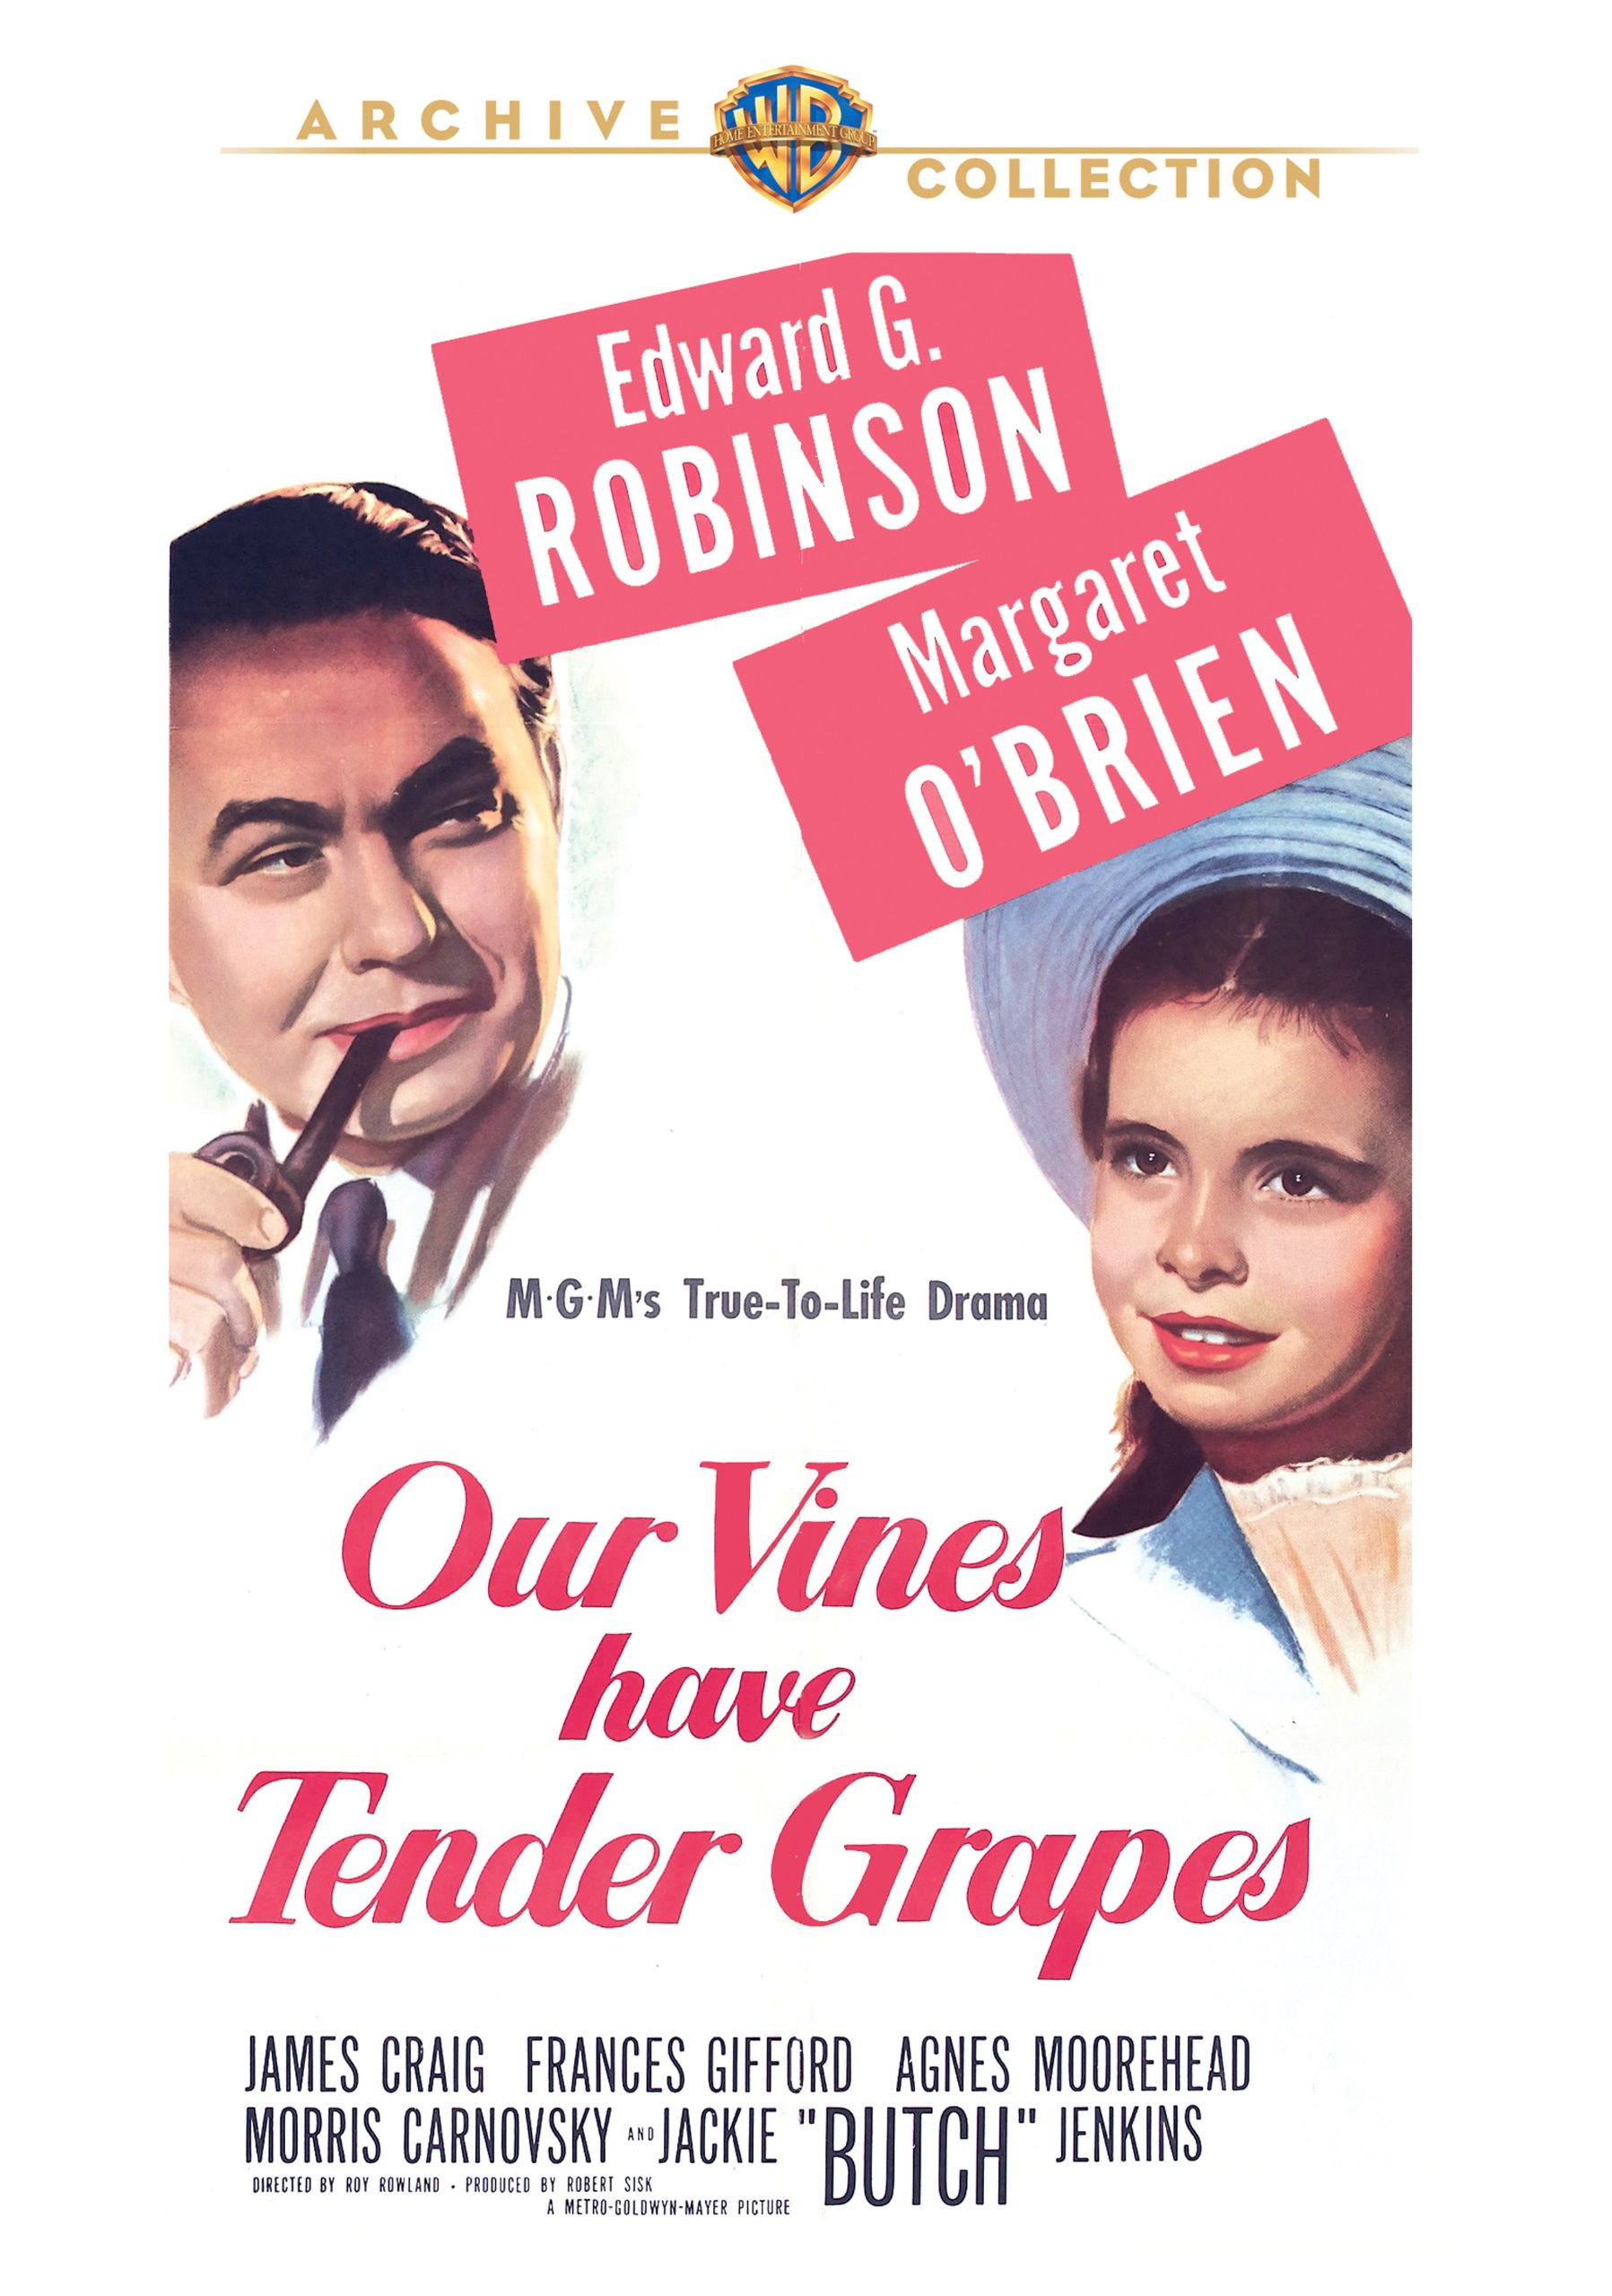 Amazon.com: Our Vines Have Tender Grapes: Edward G. Robinson ...